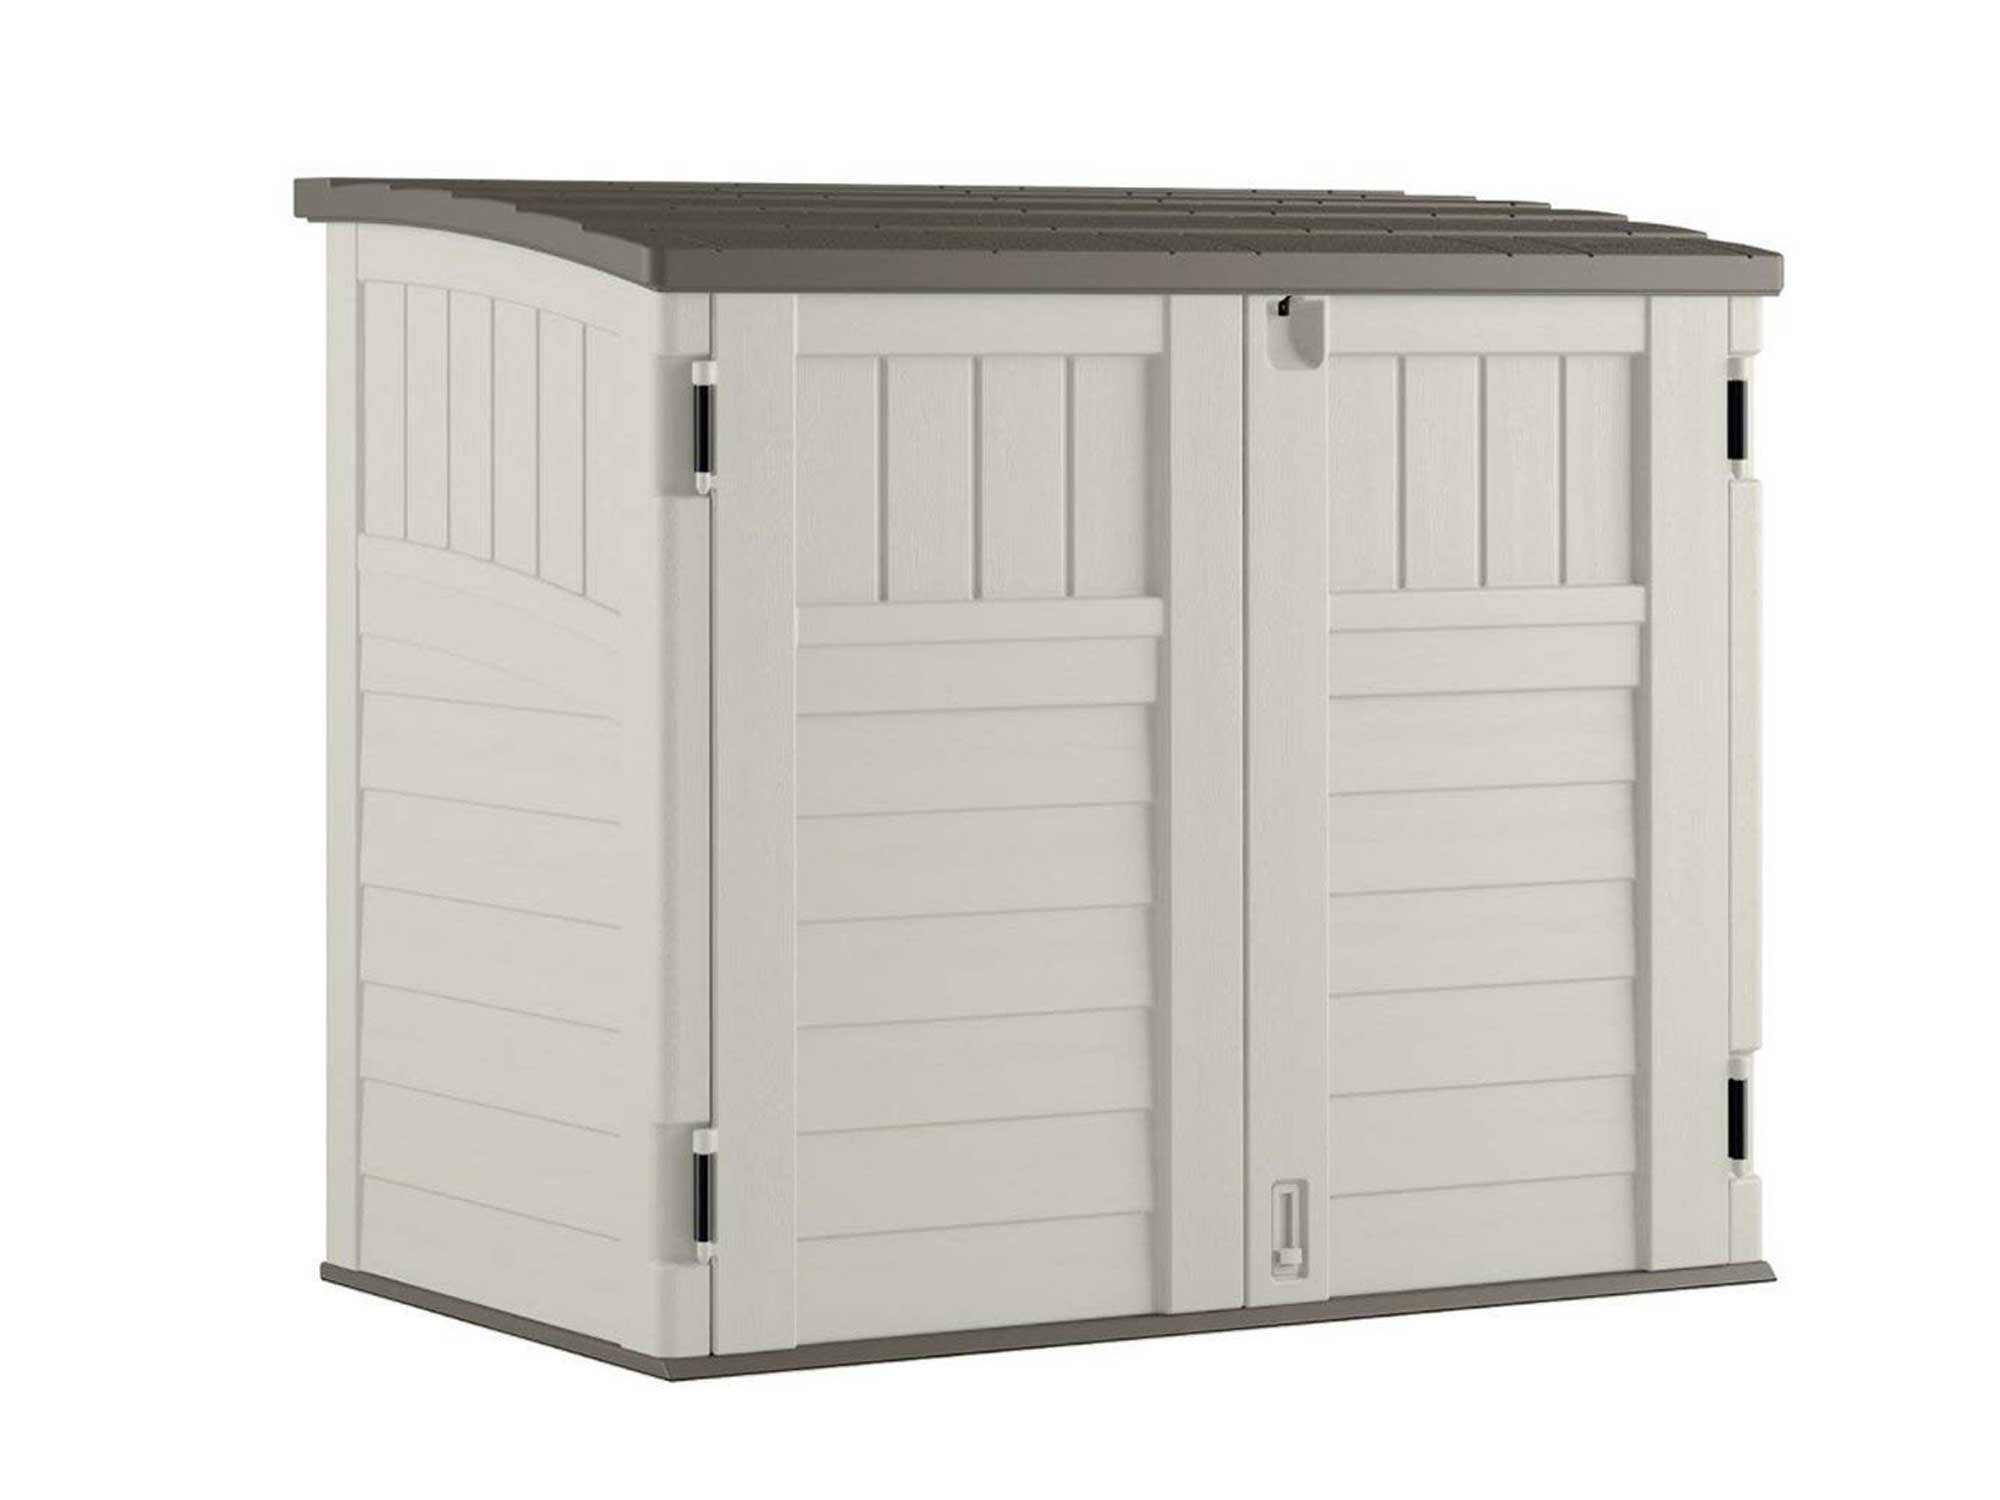 Suncast outdoor shed